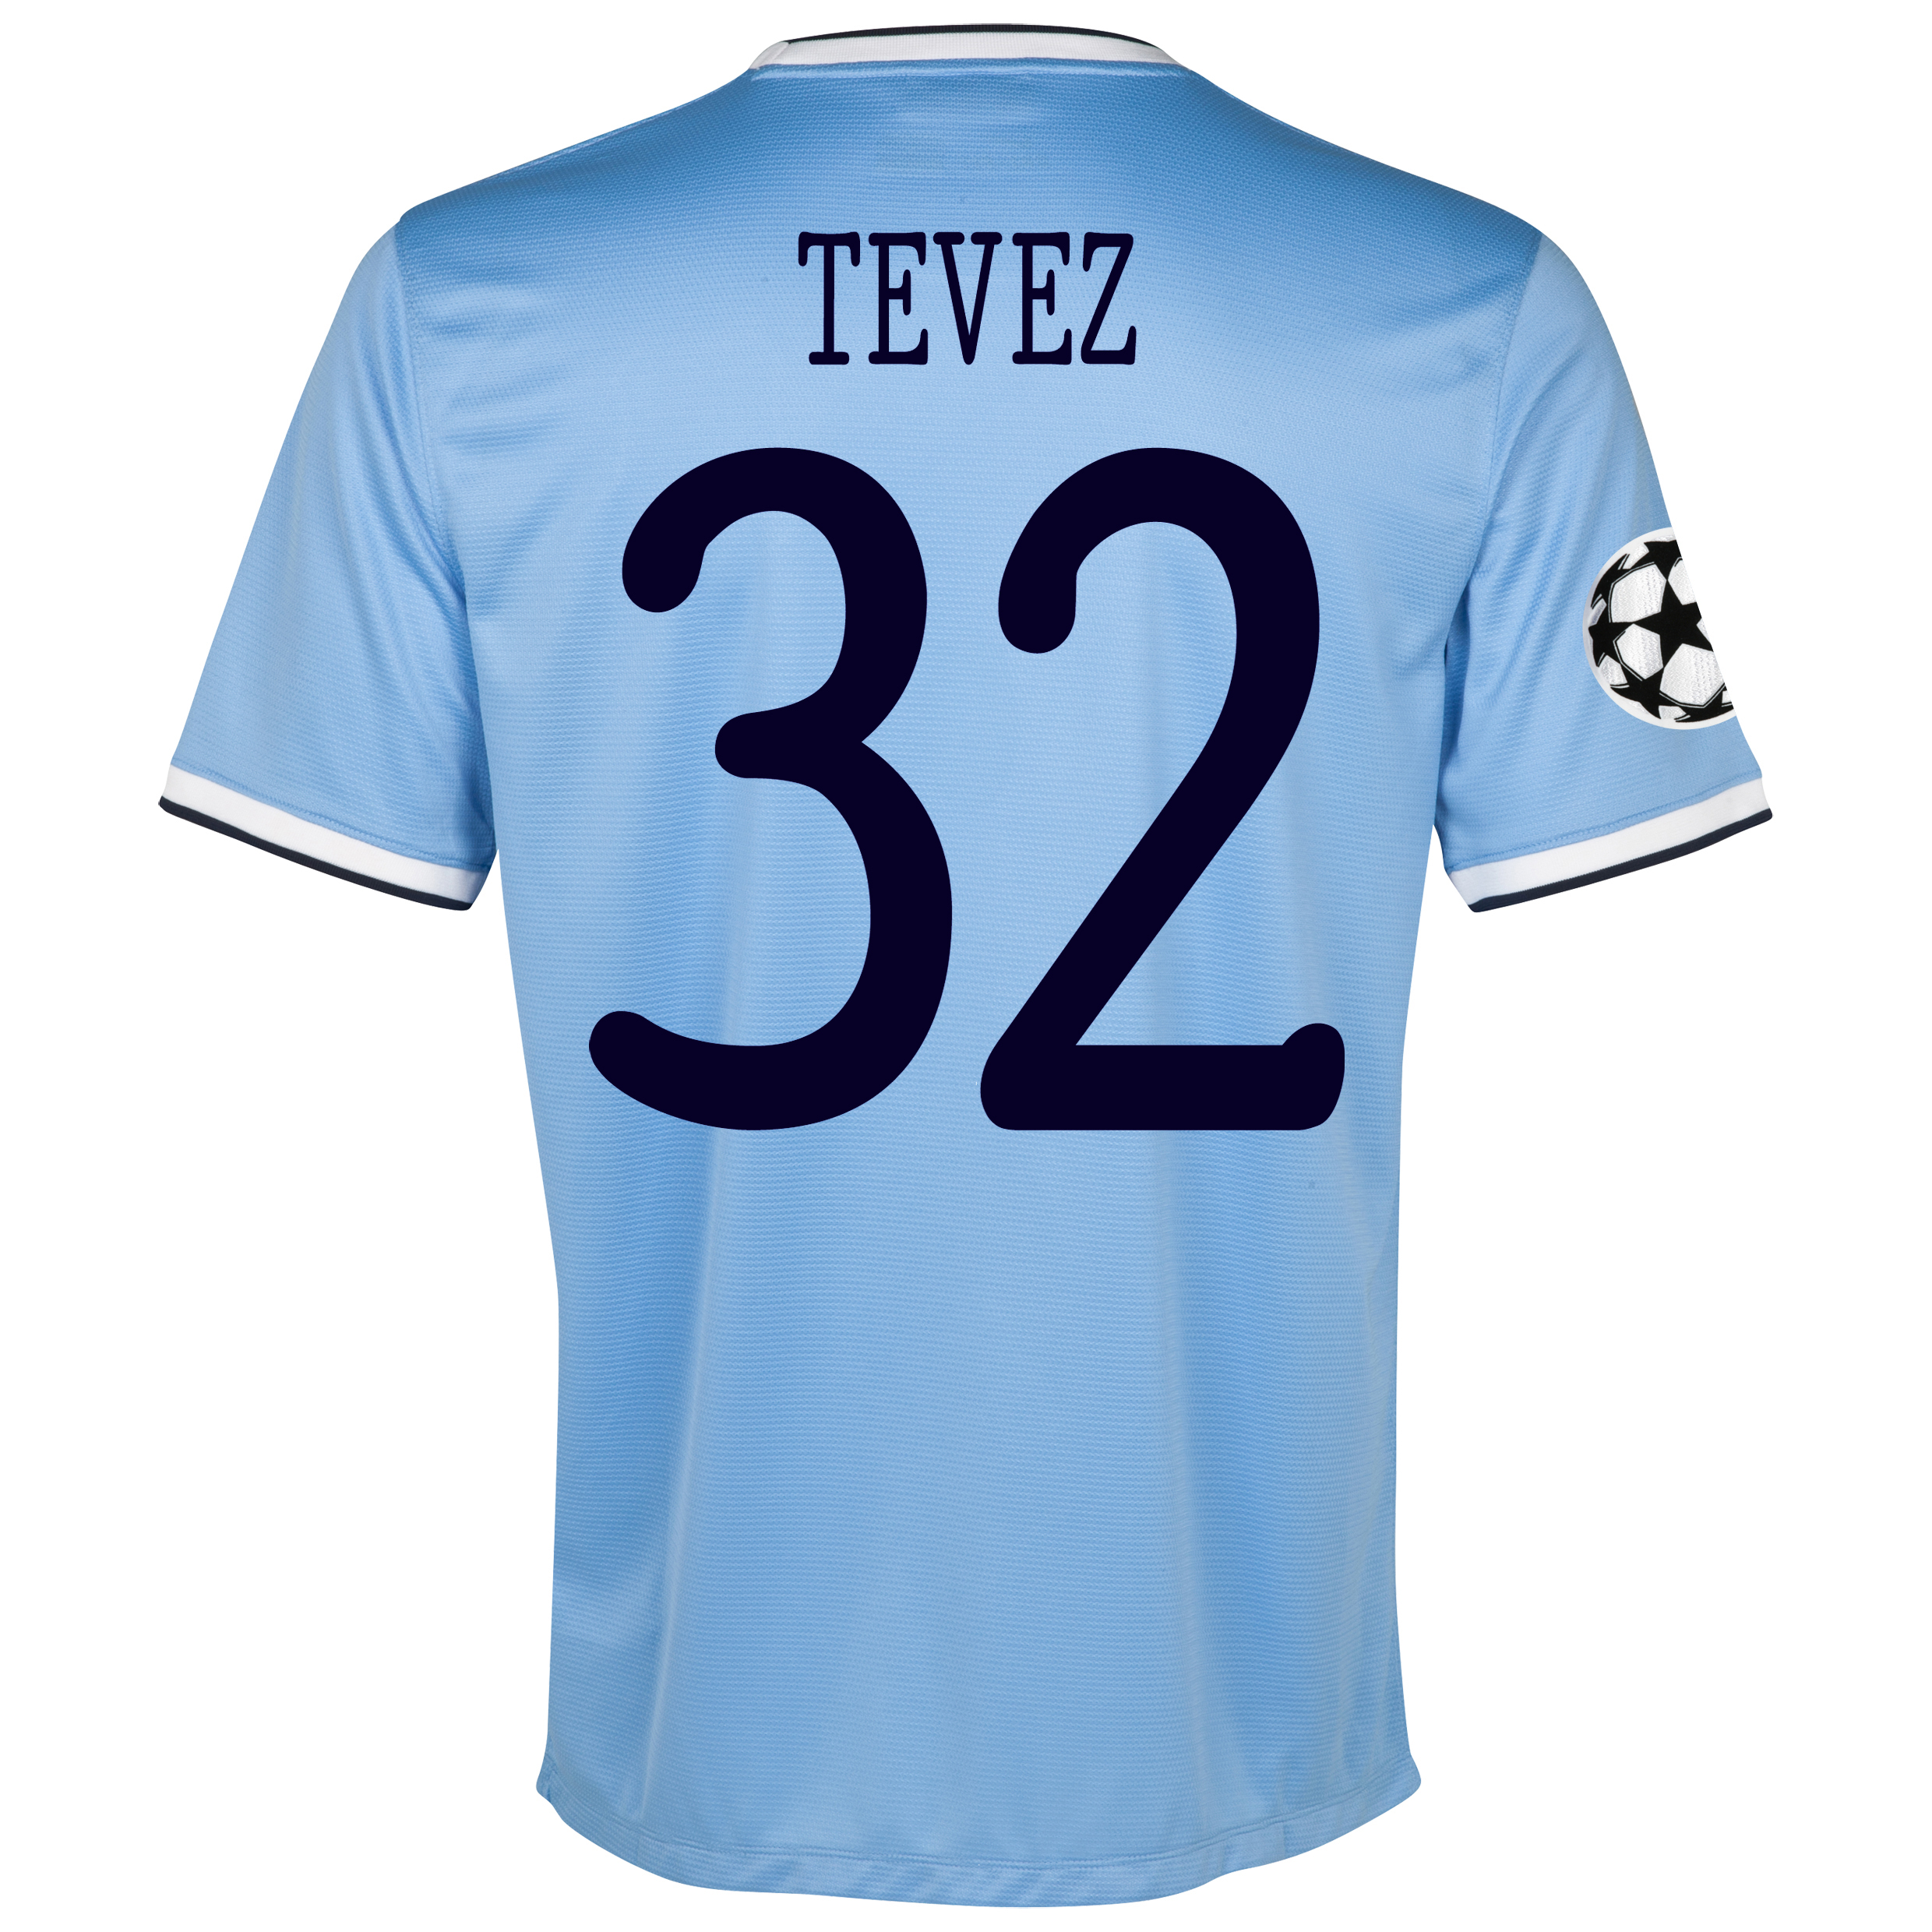 Manchester City UEFA Champions League Home Shirt 2013/14 - Junior with Tevez 32 printing